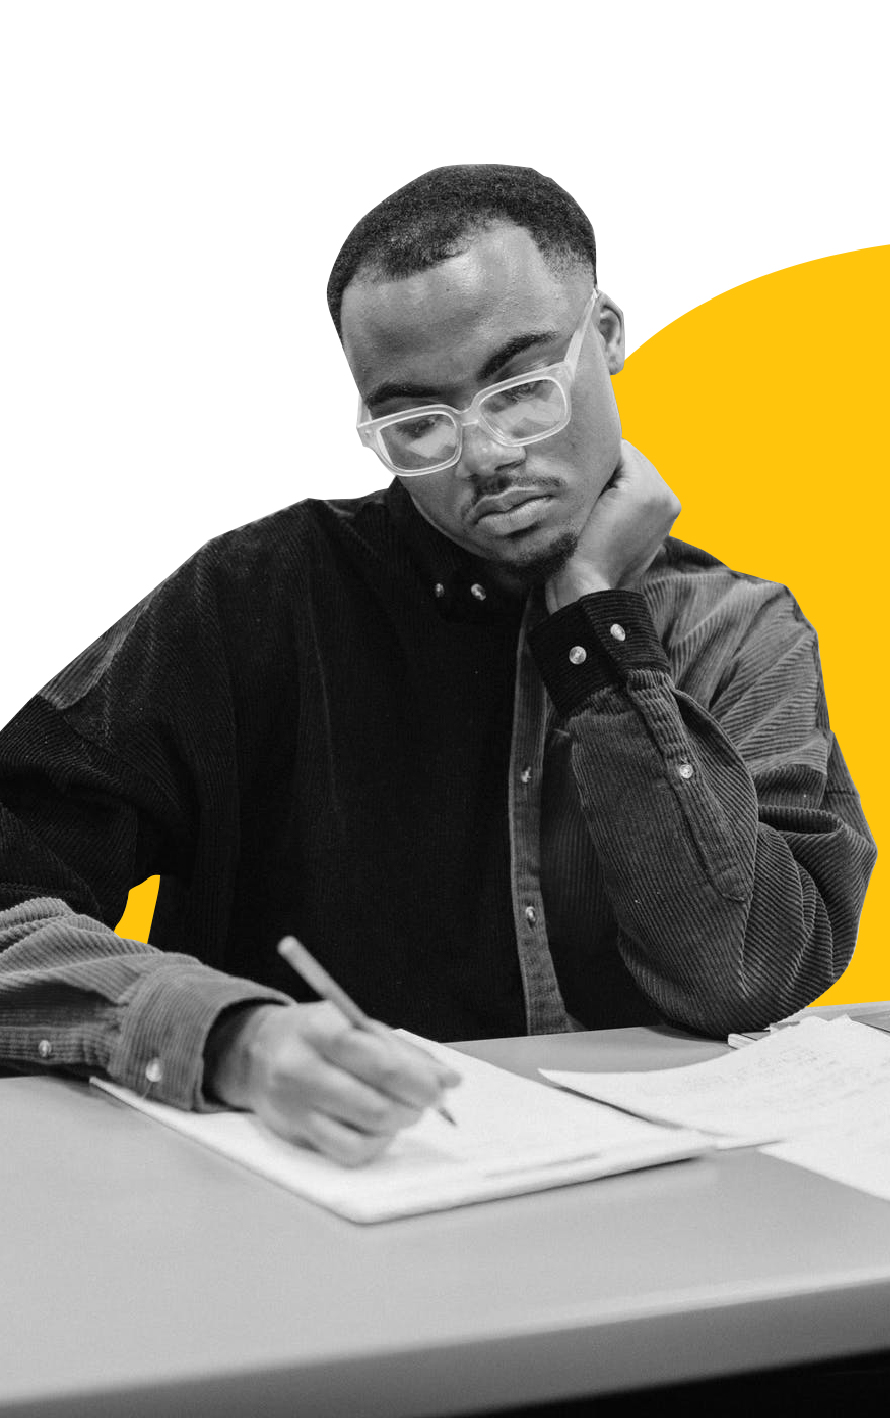 African man sitting at desk and writing in a notebook.